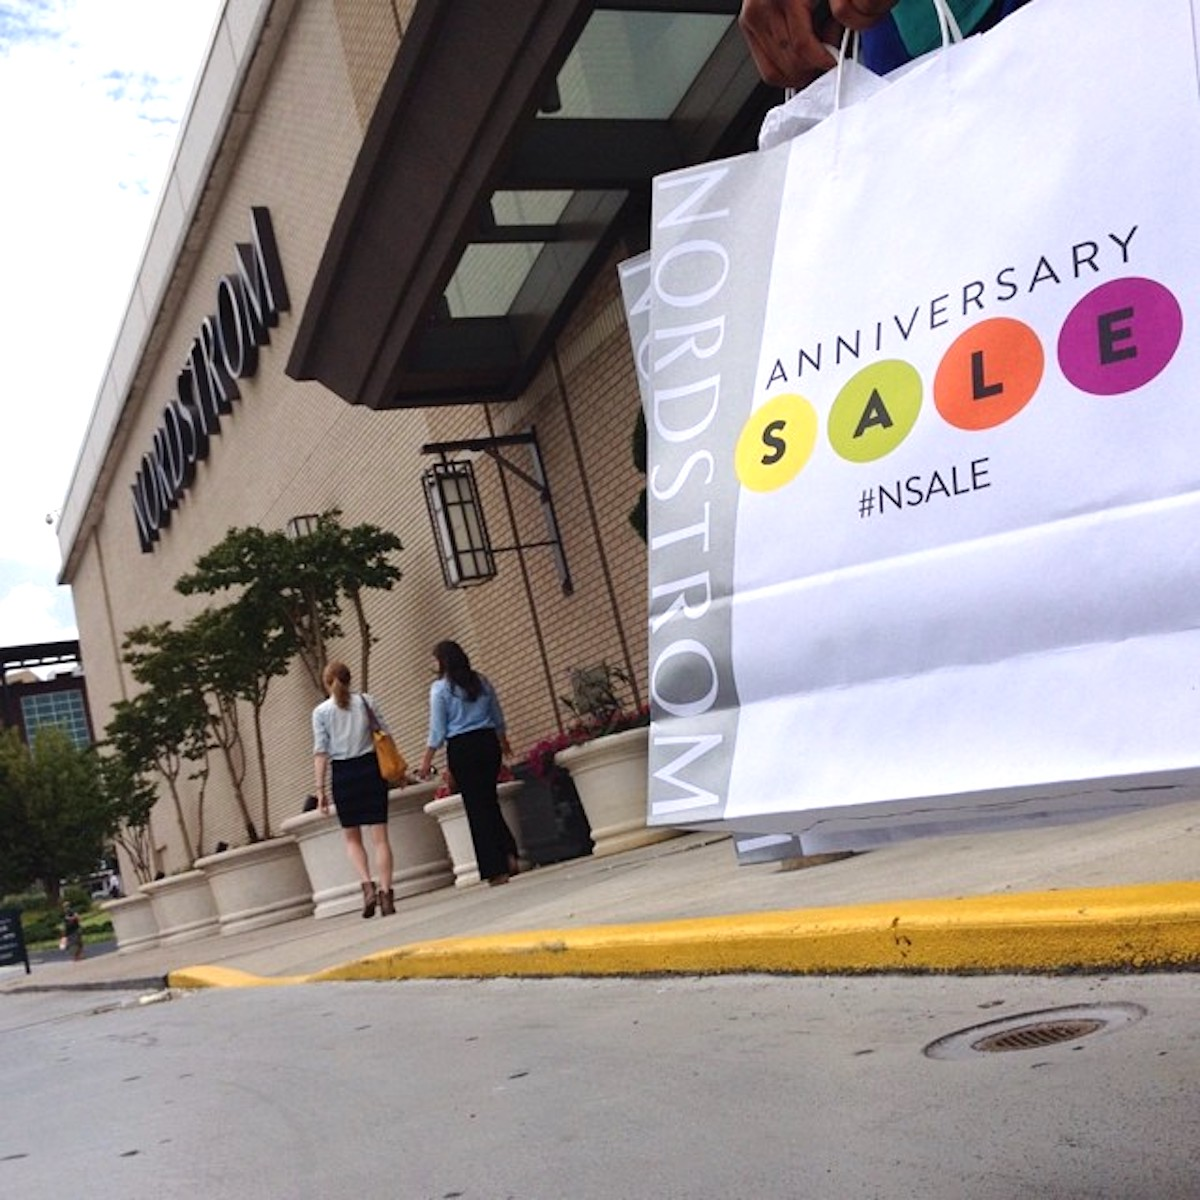 Nordstrom Closing 16 Stores Atlanta Not Included What Now Atlanta